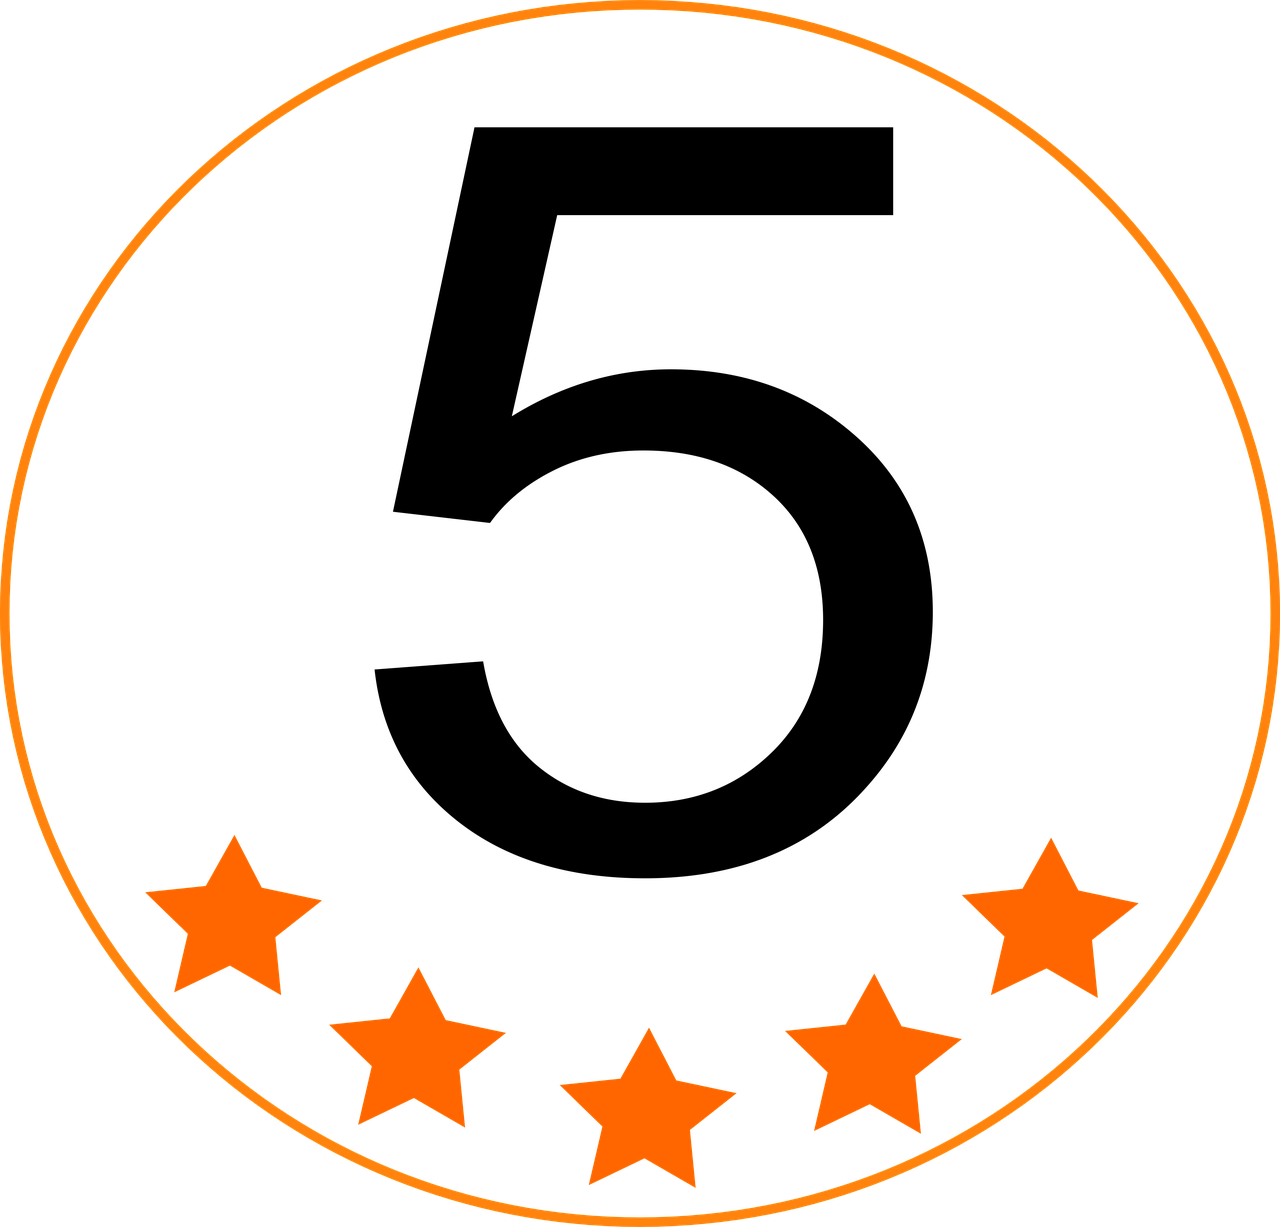 Review Link - 5-Star Reviews on Google